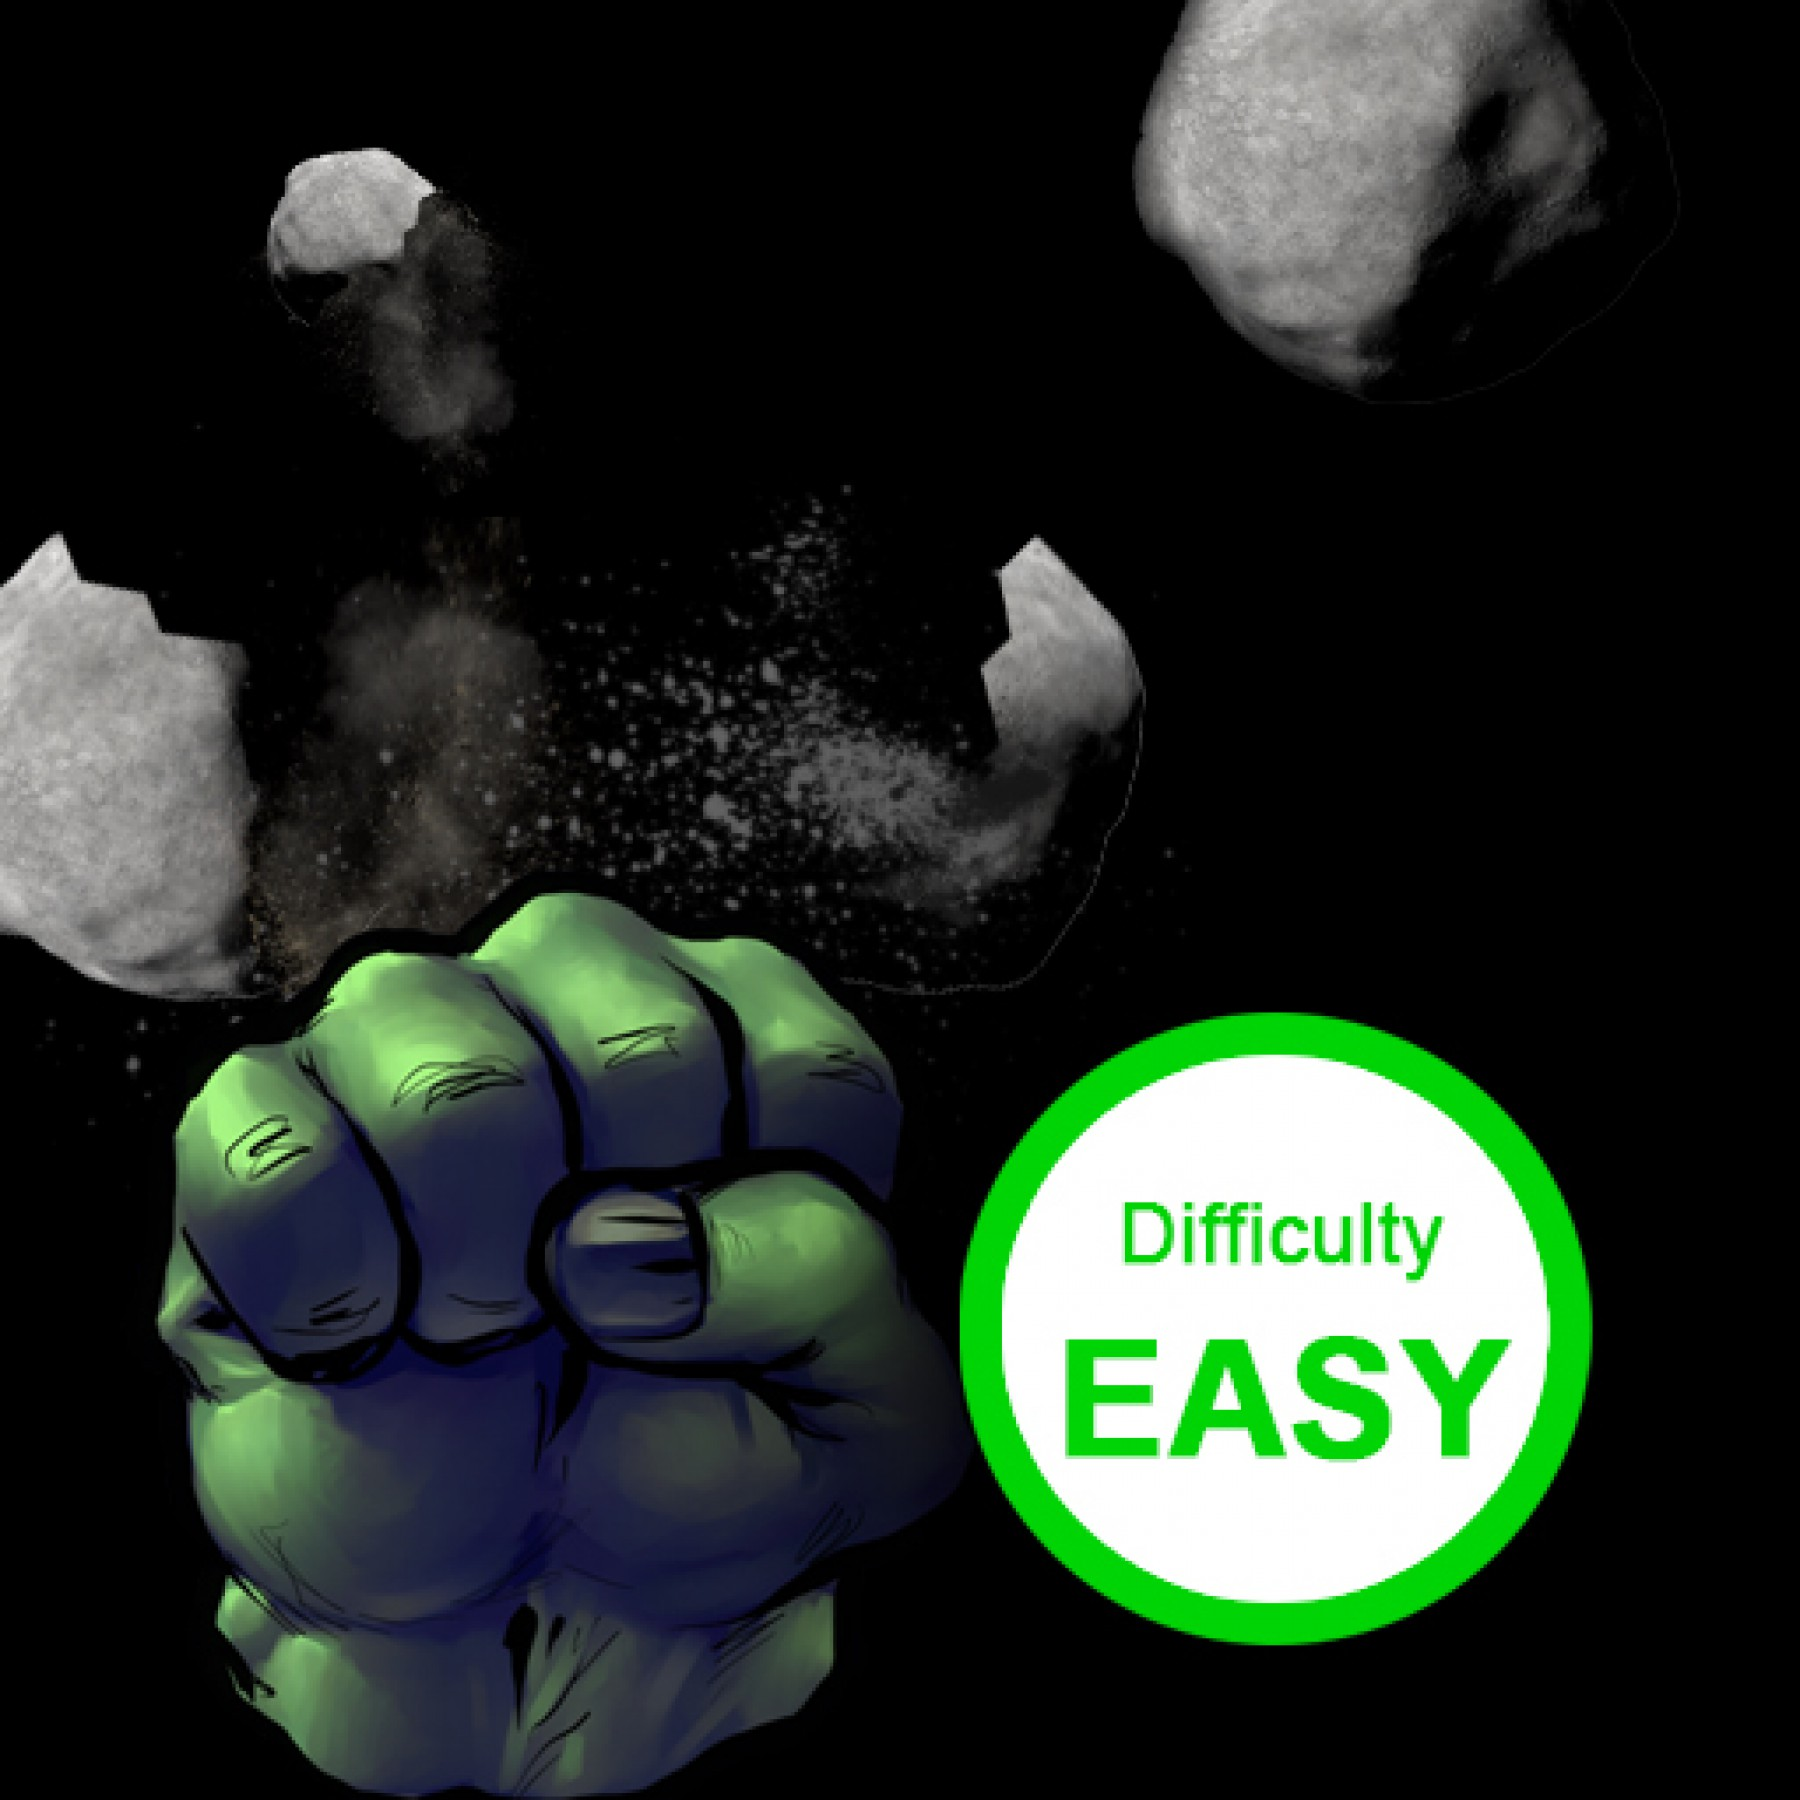 easy-rock-smash-games-playtime-active-kids-main-location1